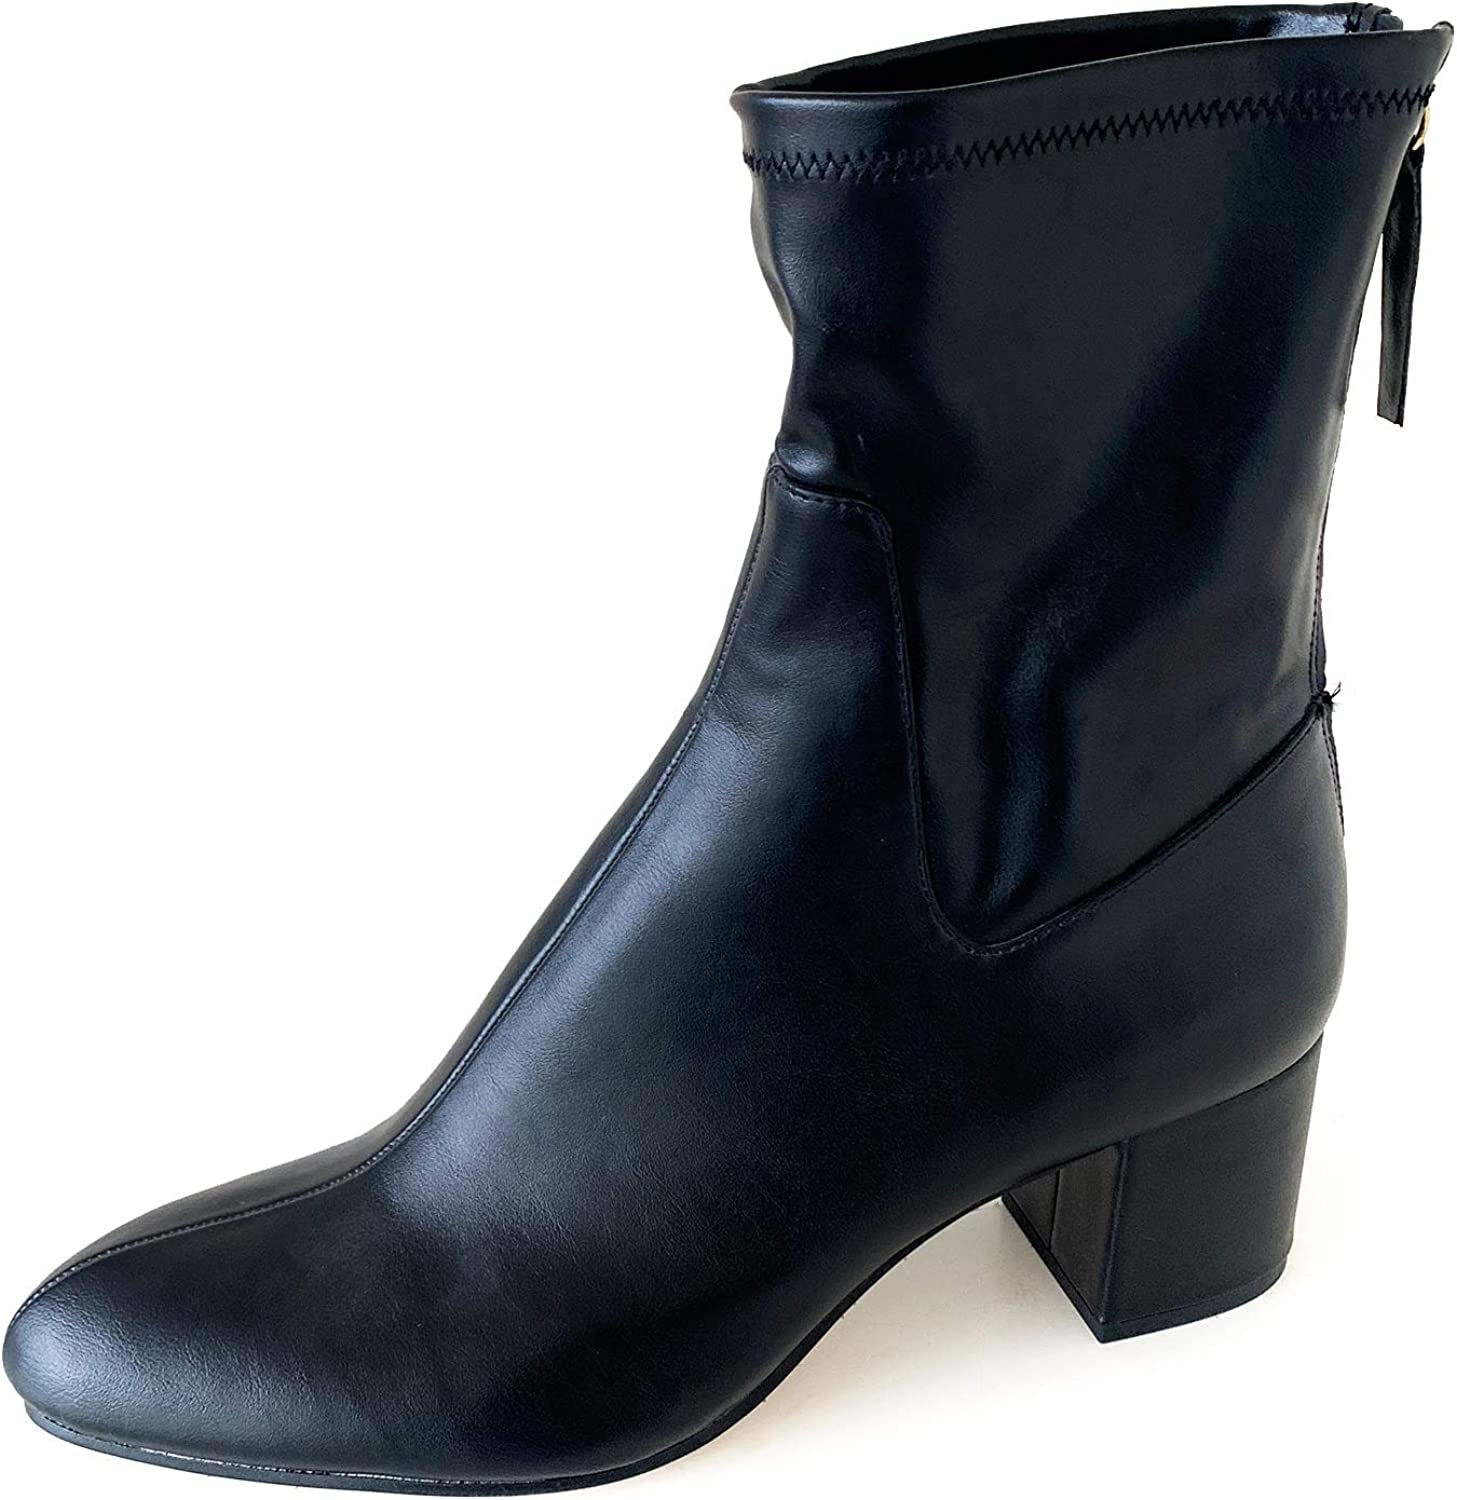 zara ankle boots with zip